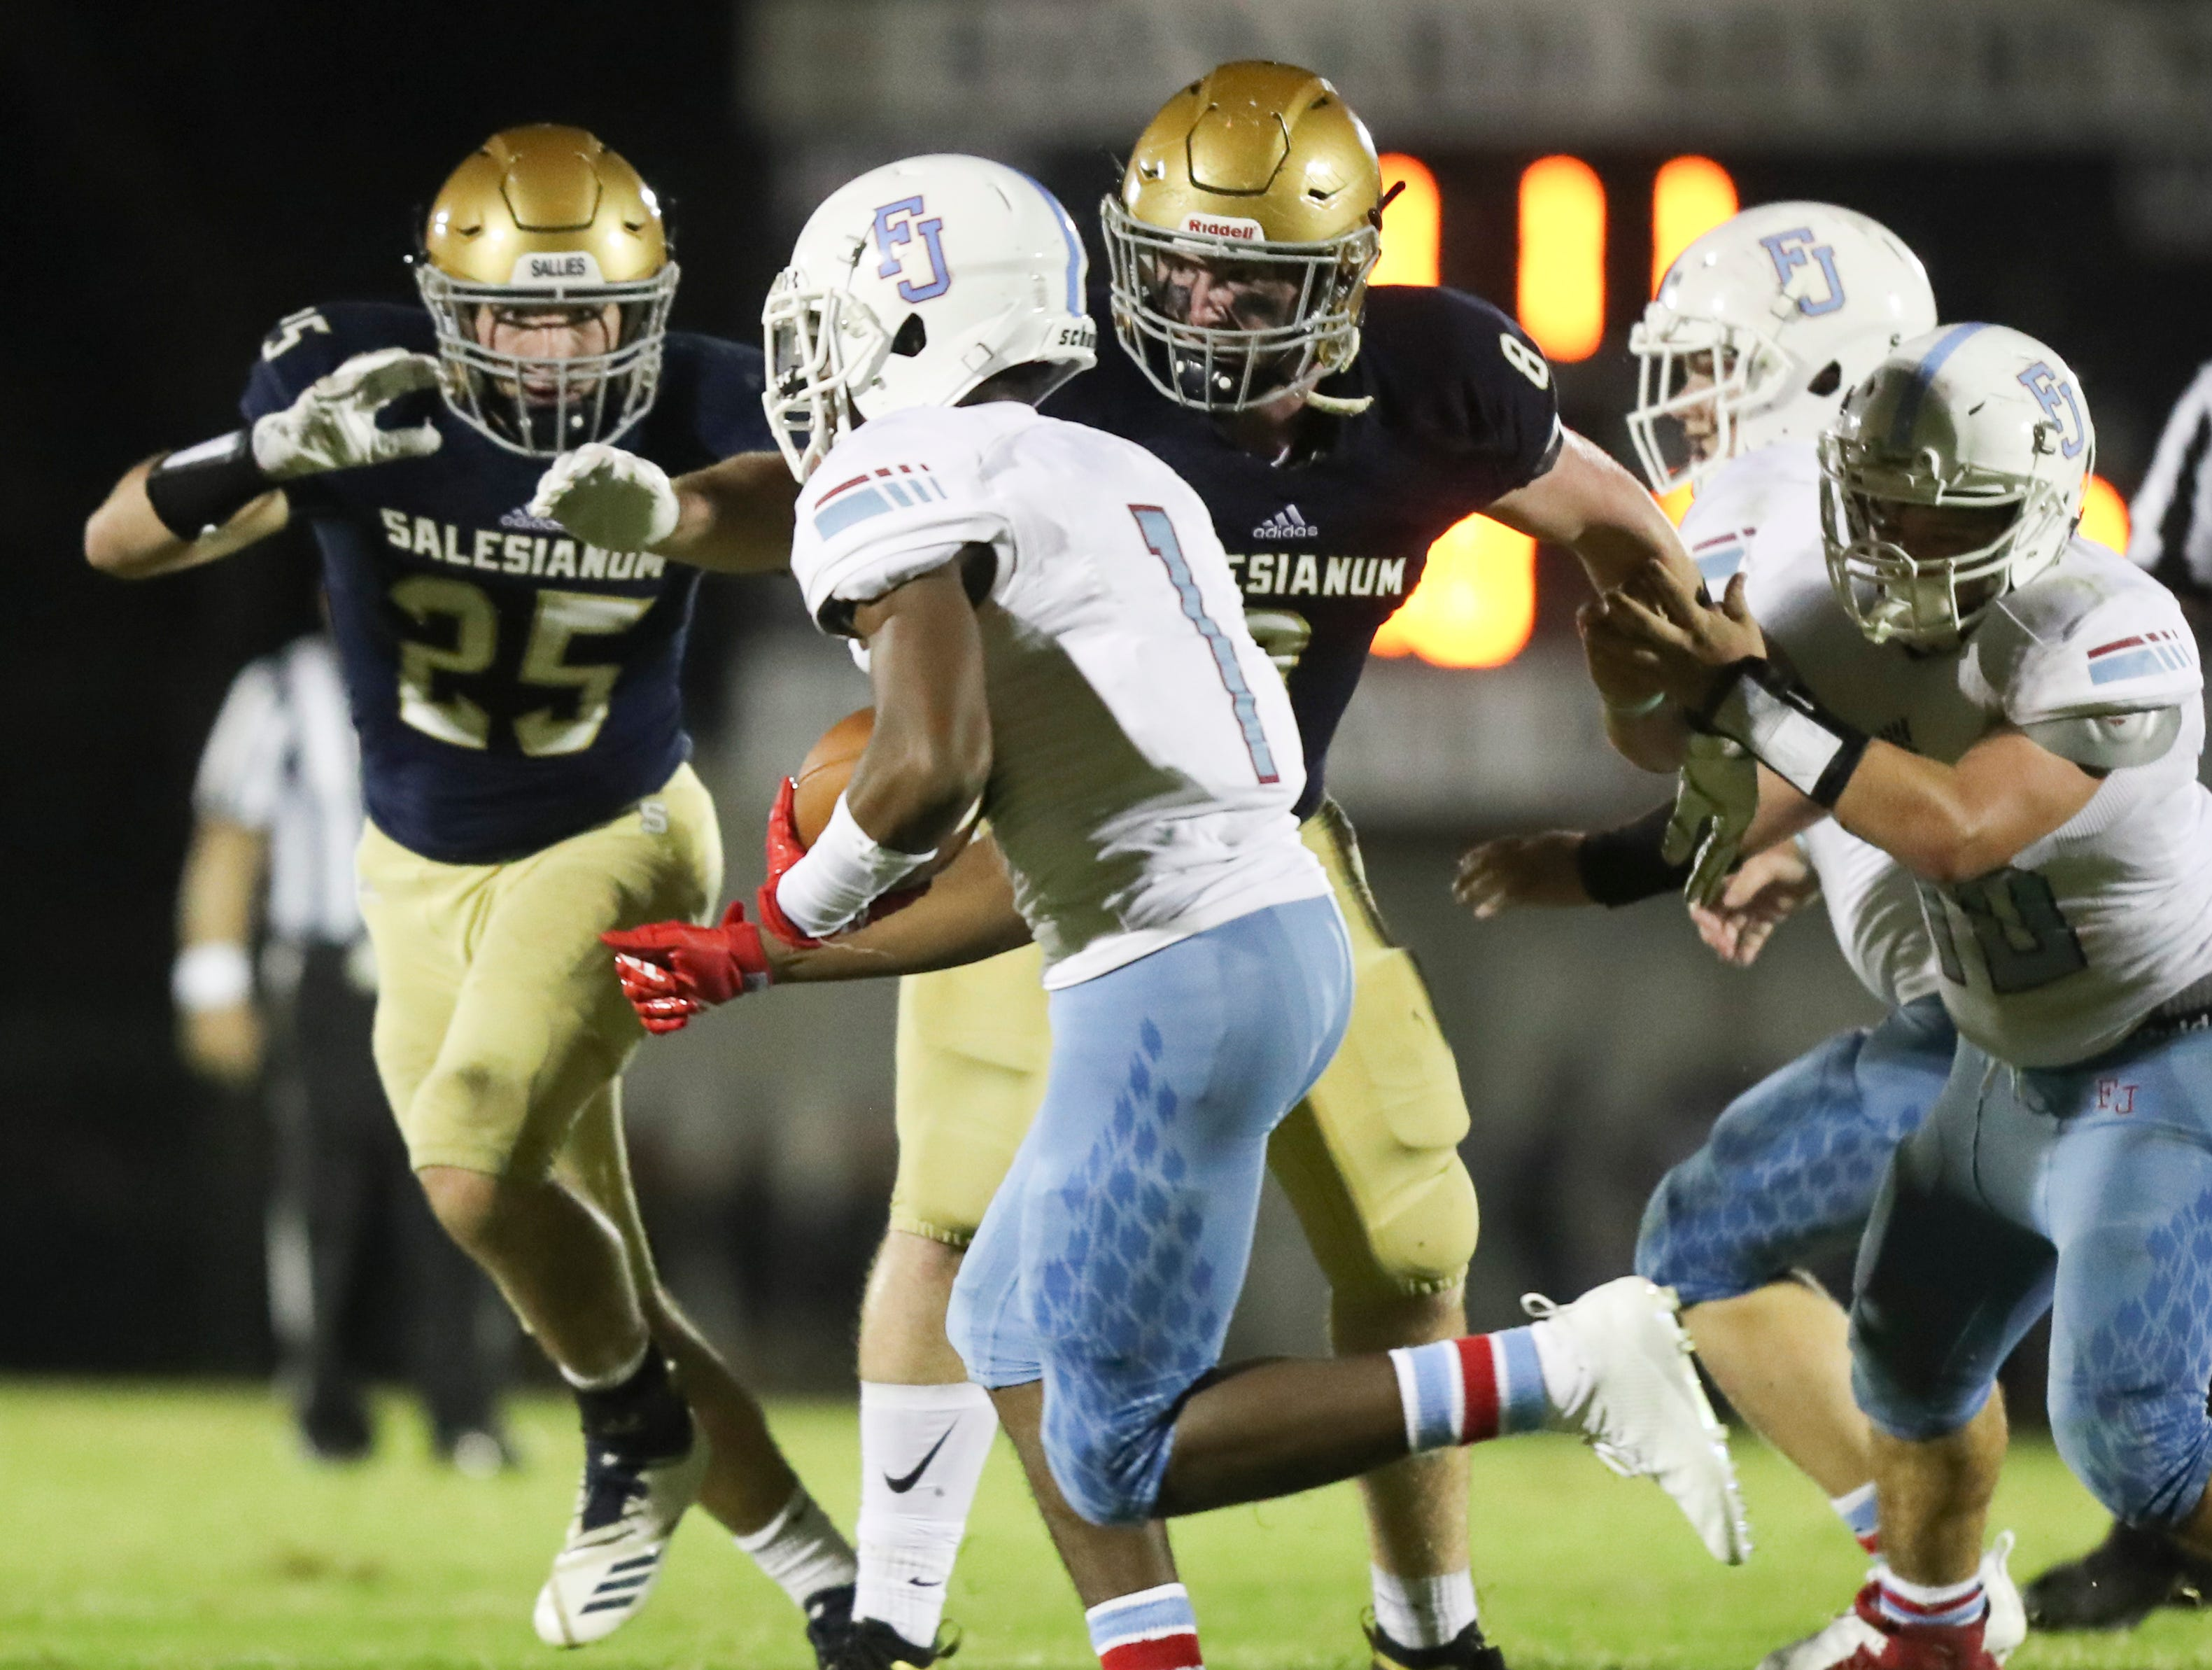 Salesianum's Colin Fowler (left) and Logan Bushweller move for Father Judge ball carrier Dameir Johnson in the second half of Salesianum's 21-14 win at Baynard Stadium Friday.